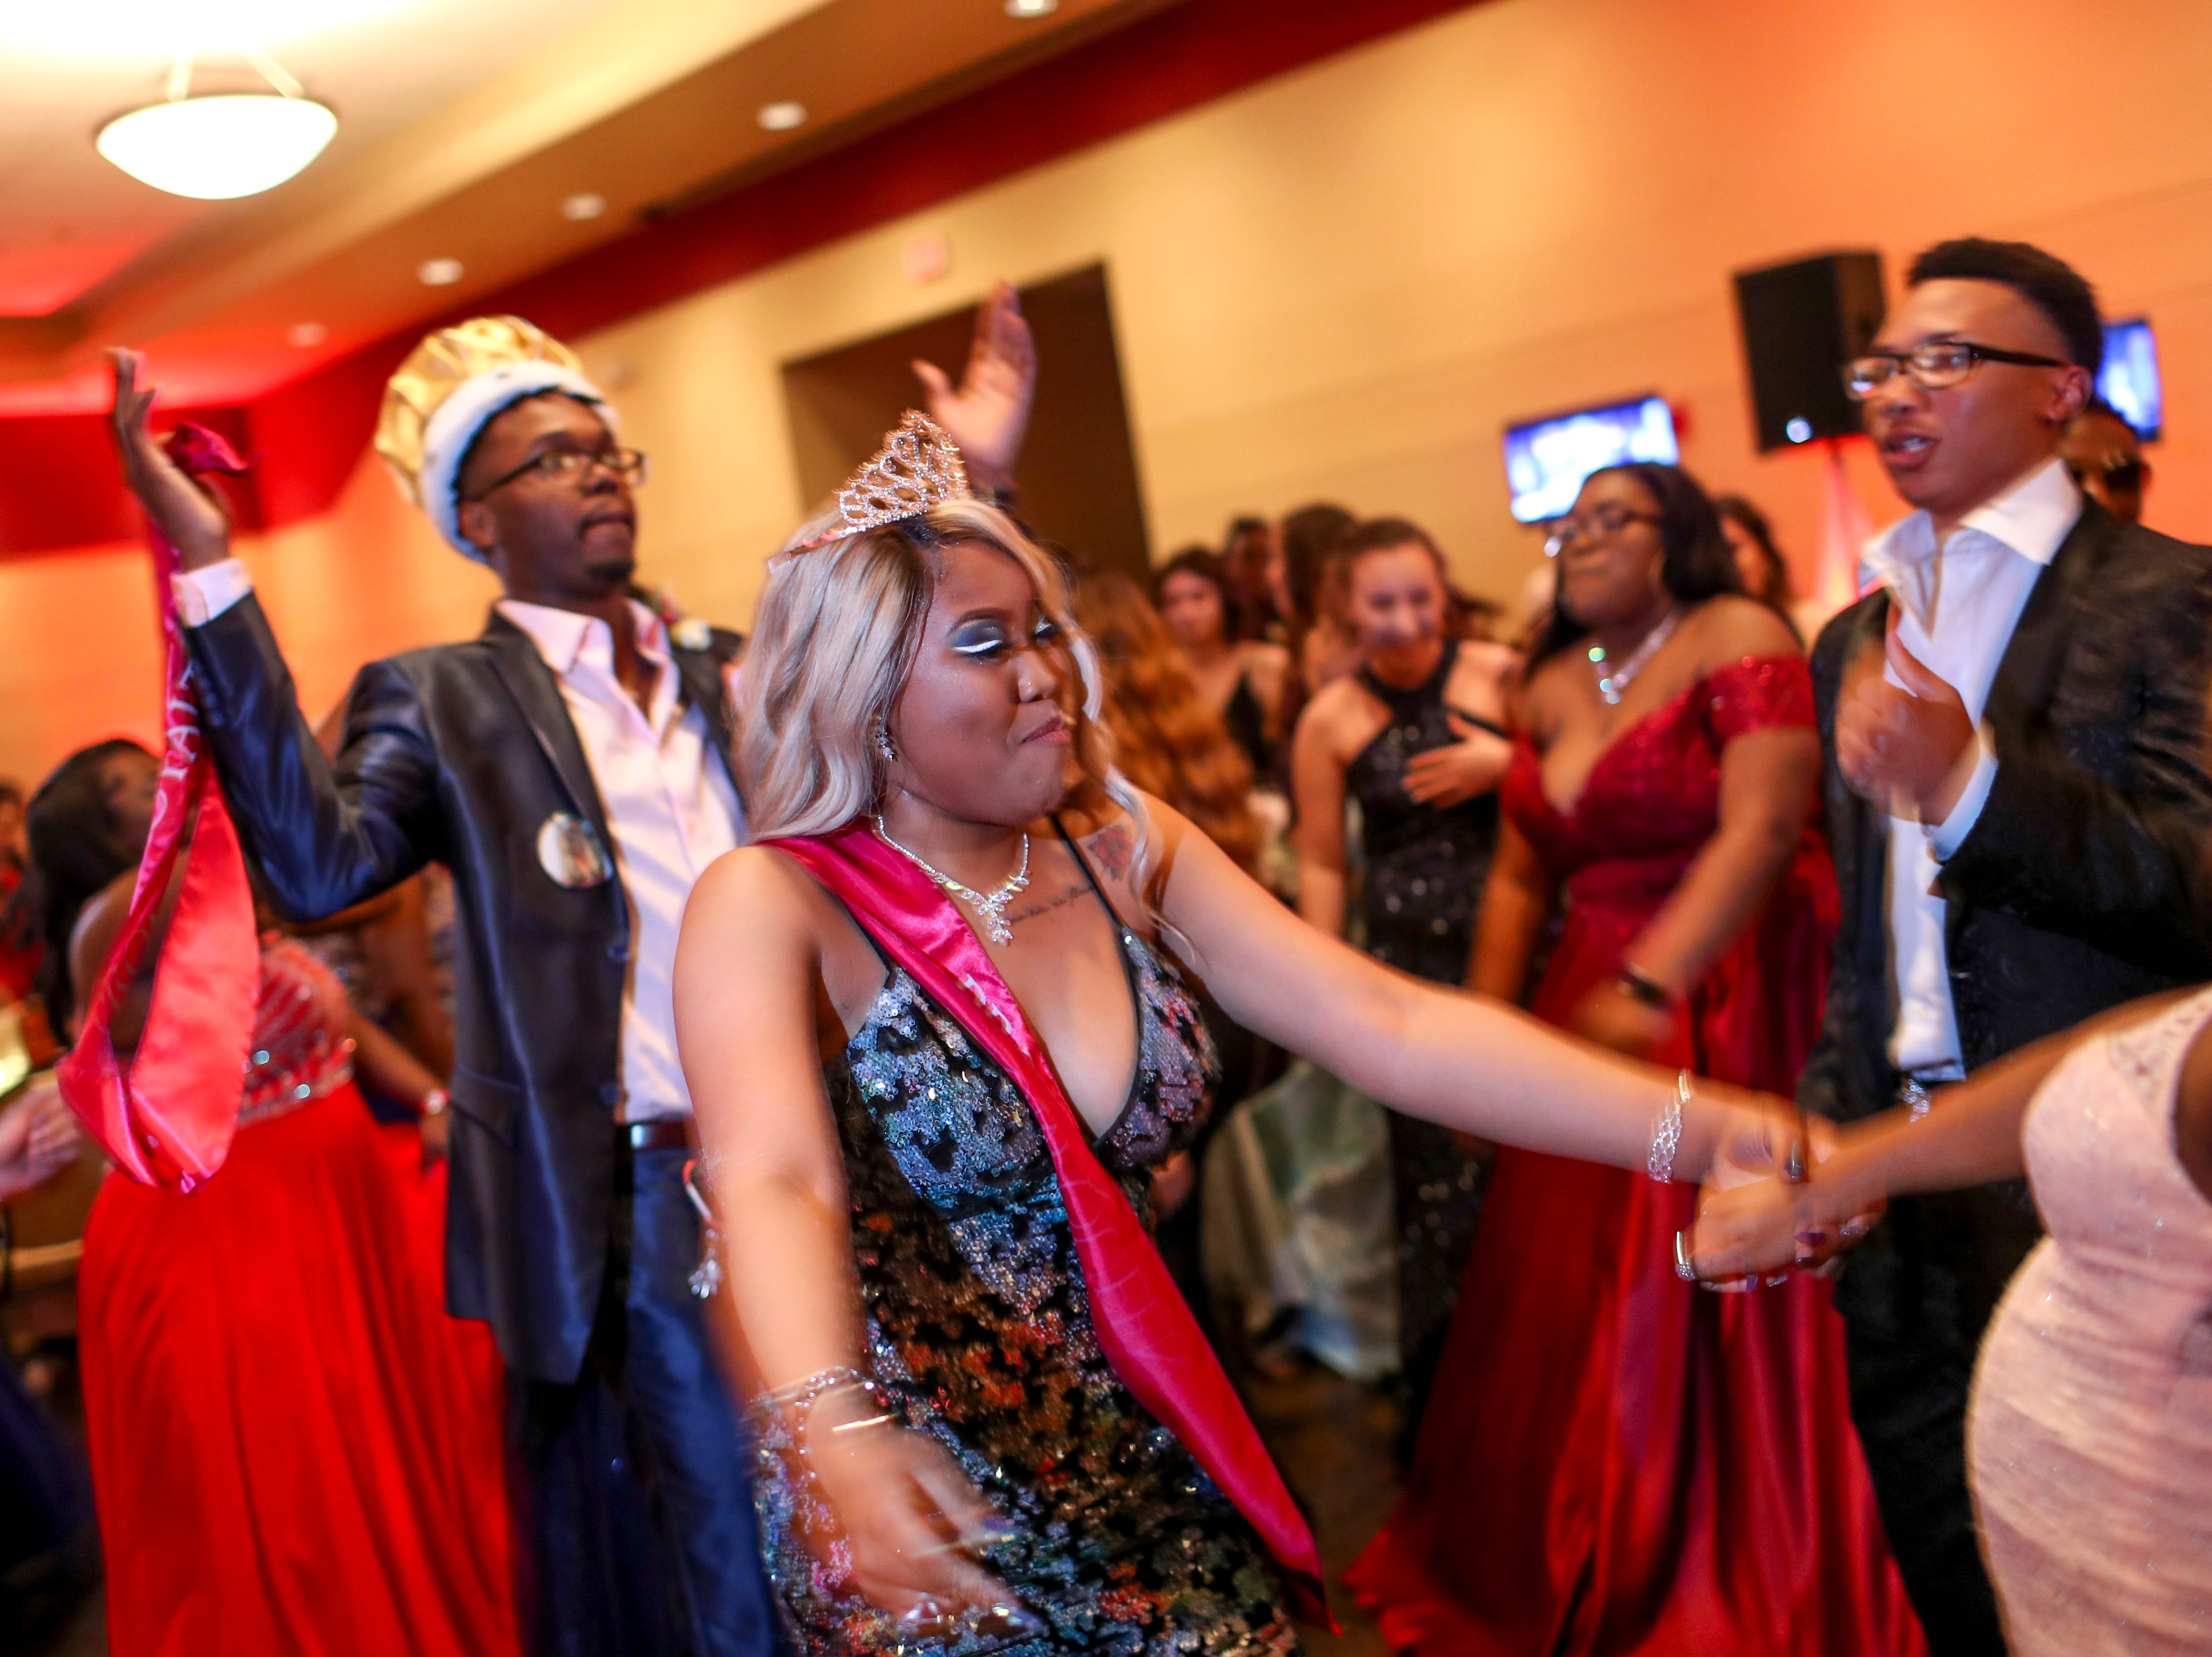 """The prom king and queen are joined by hundreds of students from Kenwood High School celebrated their 2019 prom themed """"Cherish the Moment"""" at Valor Hall in Oak Grove, KY., on Saturday, May 4, 2019."""